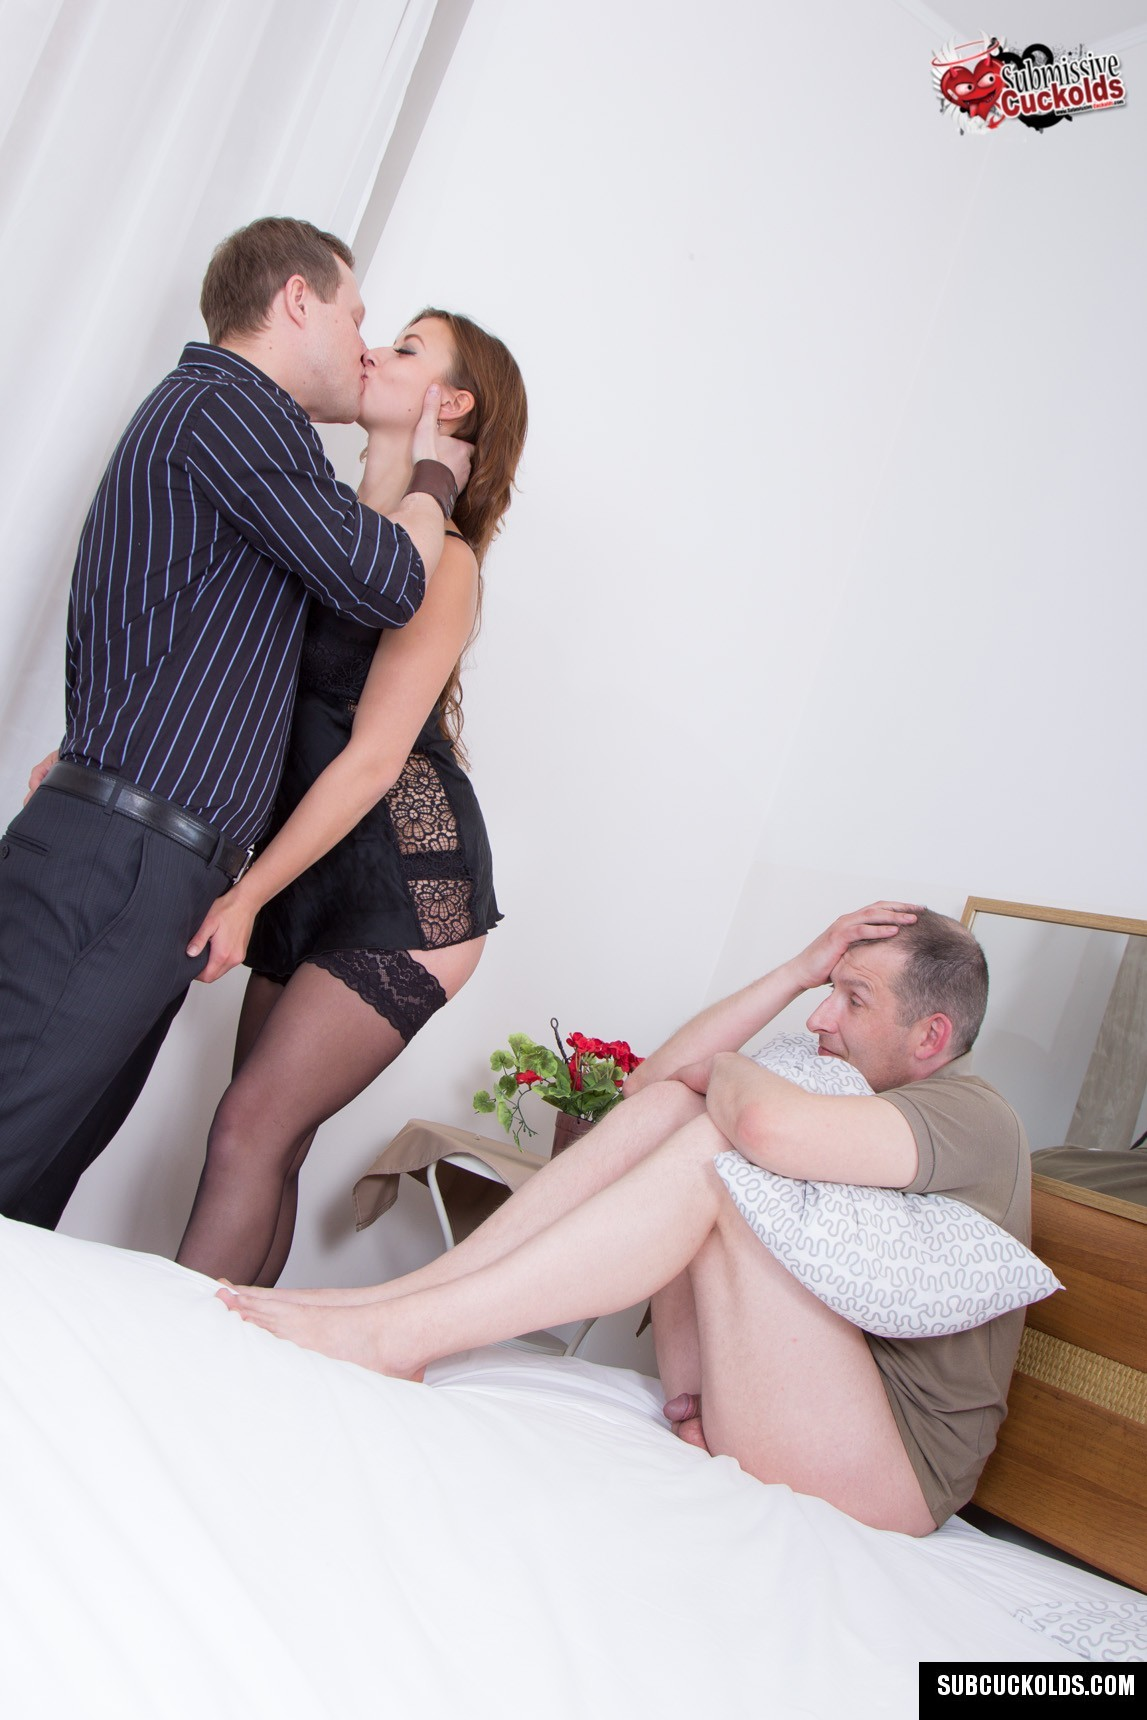 A young cuckold relationship part 3 - 2 part 5